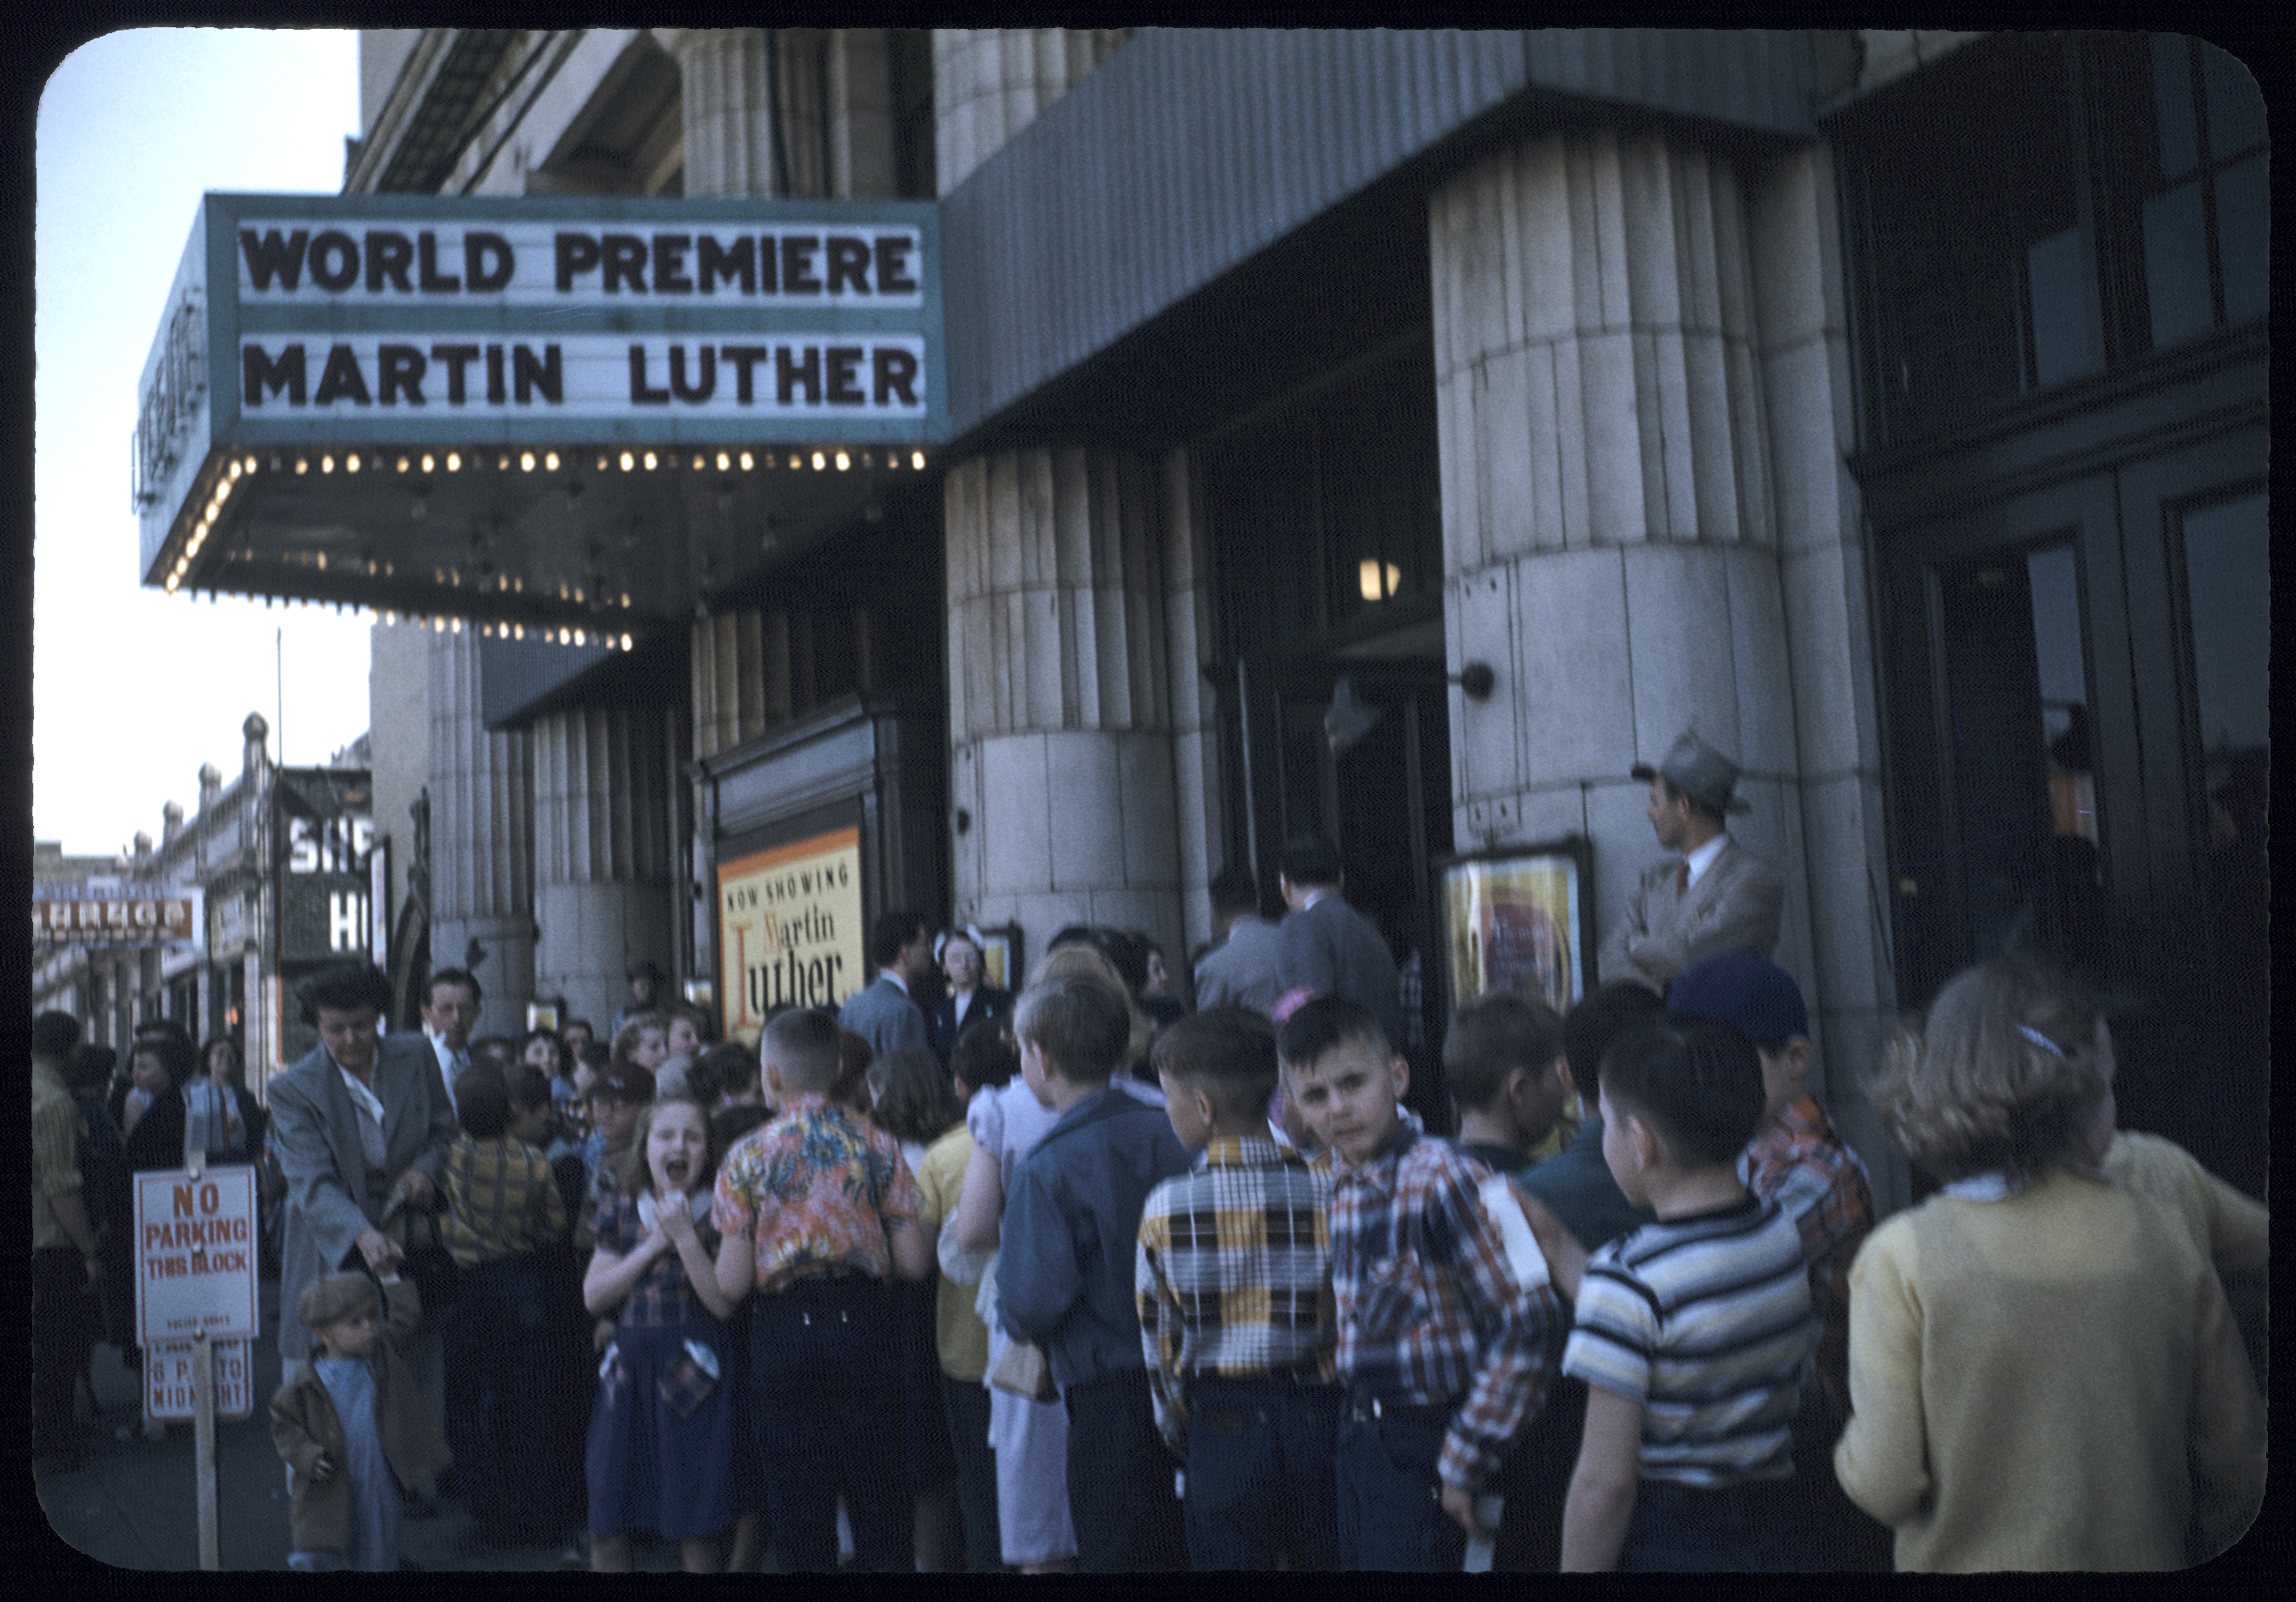 The Martin Luther (1953) World Premiere at the Minneapolis Lyceum Theater